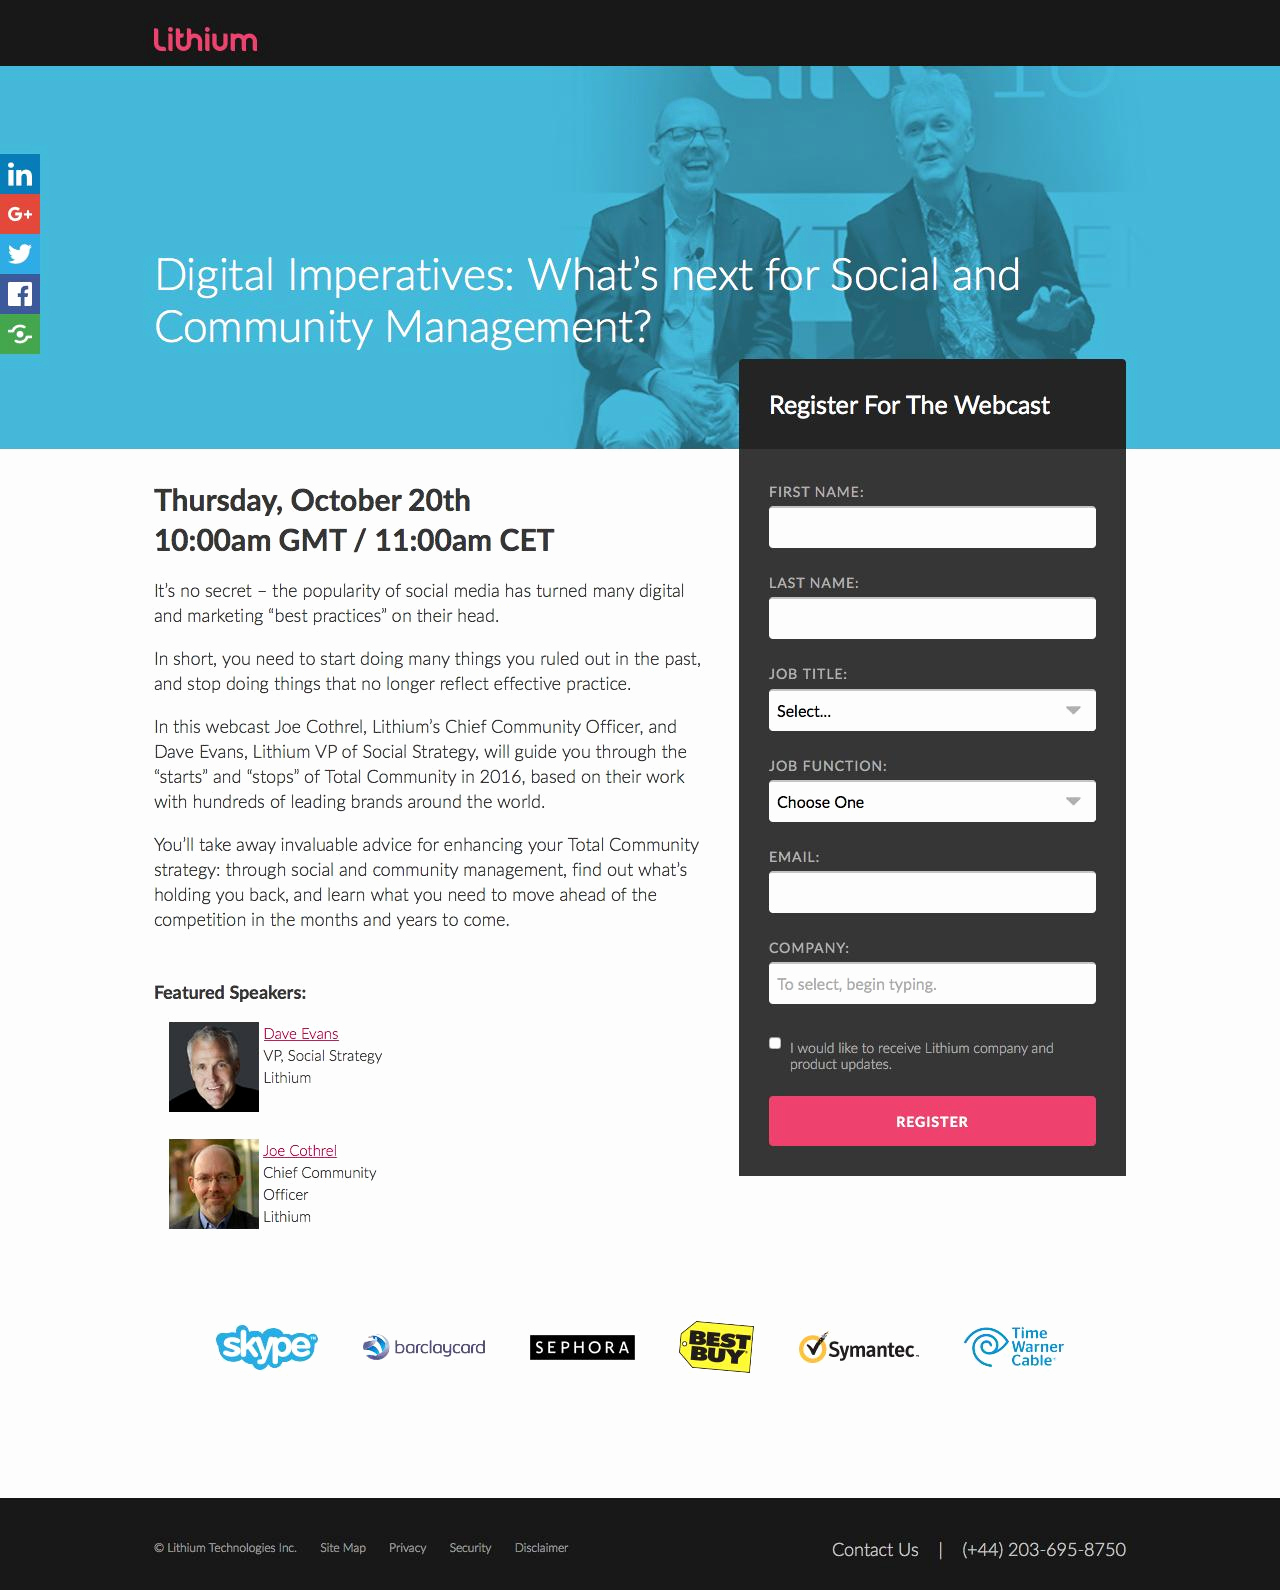 Event Registration Landing Page Fresh 101 Of the Best Landing Pages Analyzed Part 3